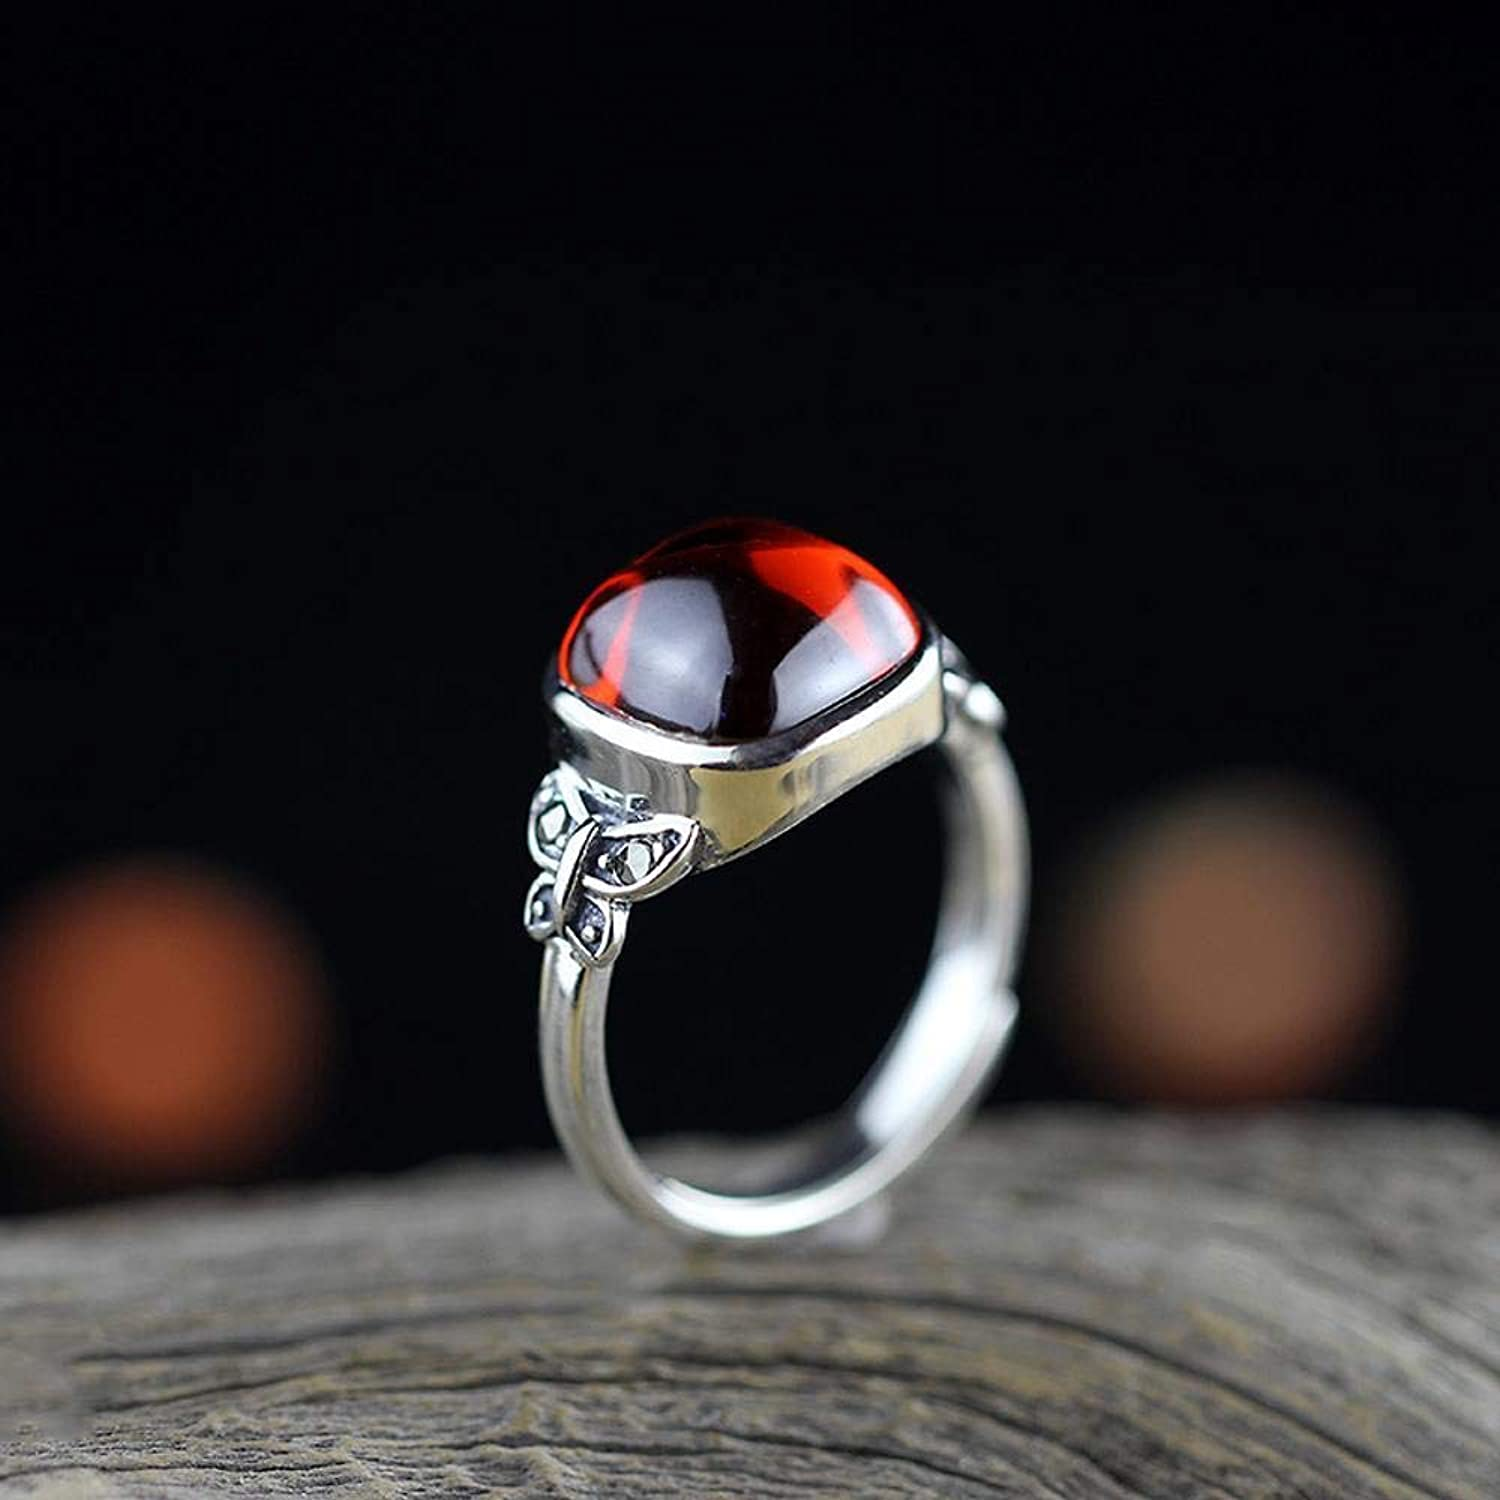 DTZH Rings Jewellery Ring S925 Sterling Silver Ring Butterfly Ladies Opening Ring Gift to Dear